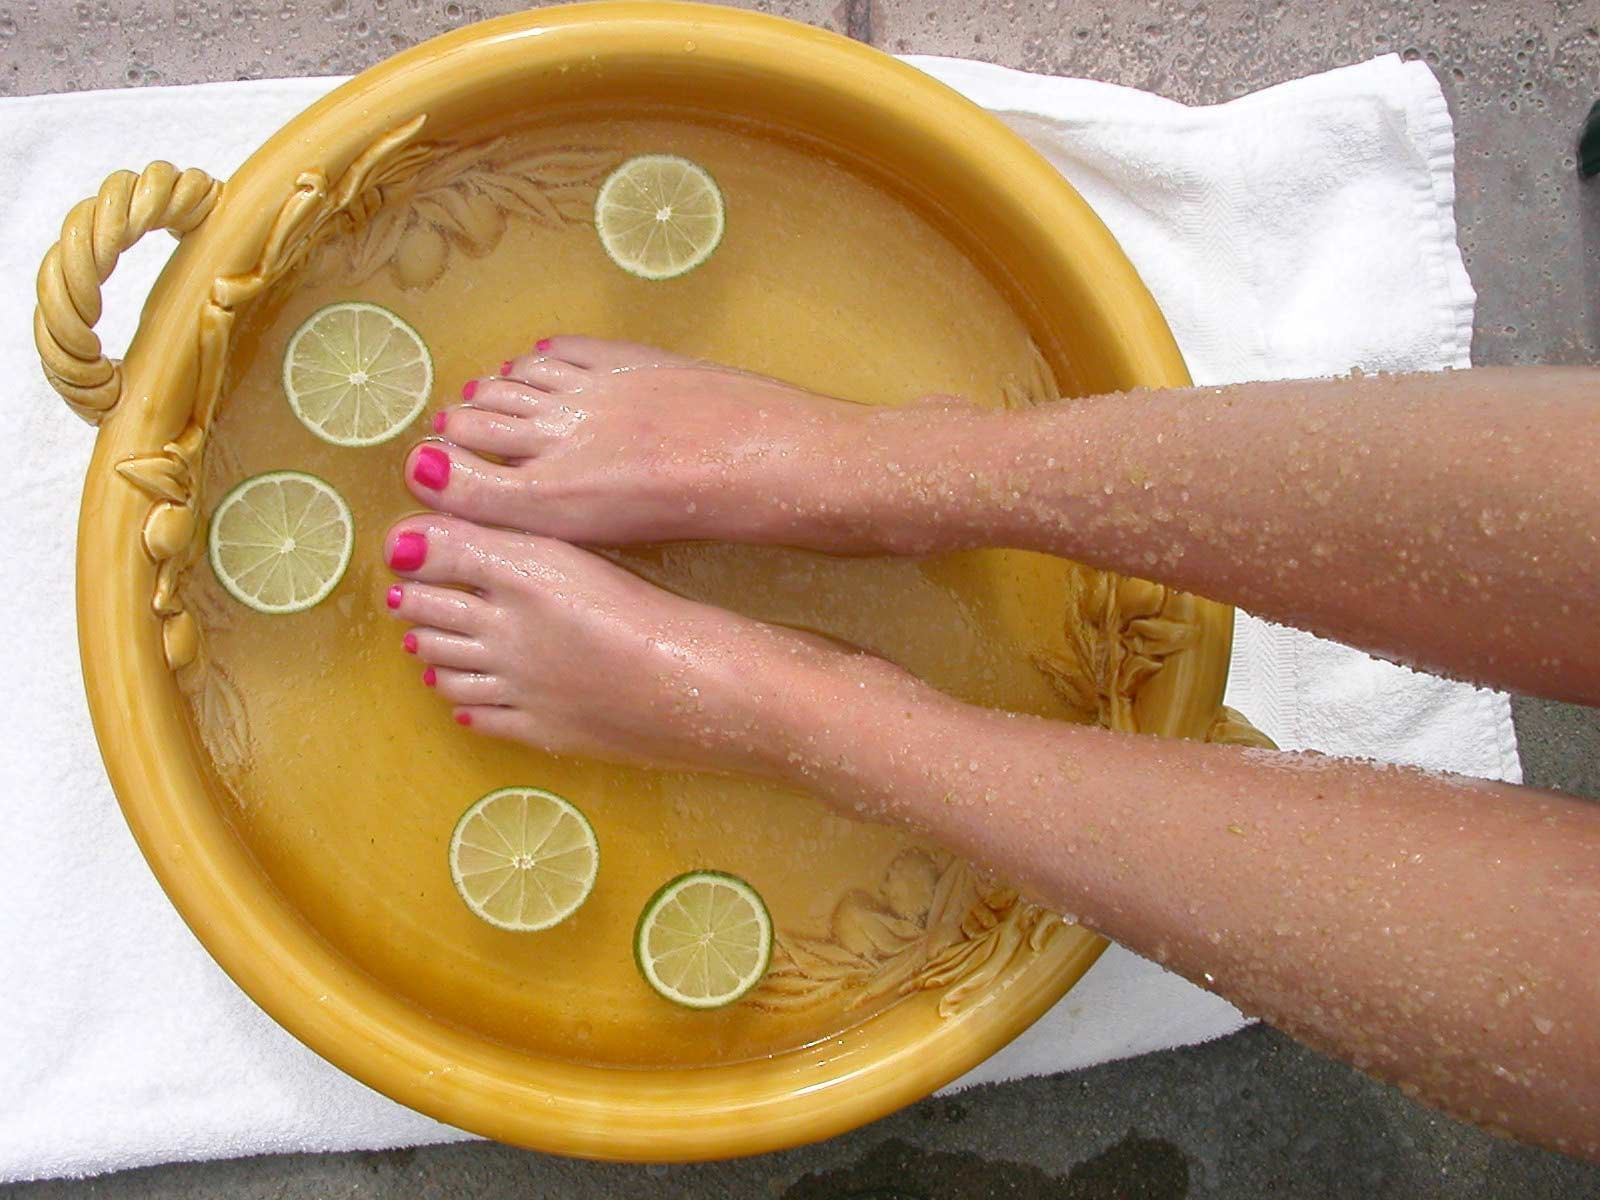 A woman getting a foot treatment at Kelly's Spa & Boutique